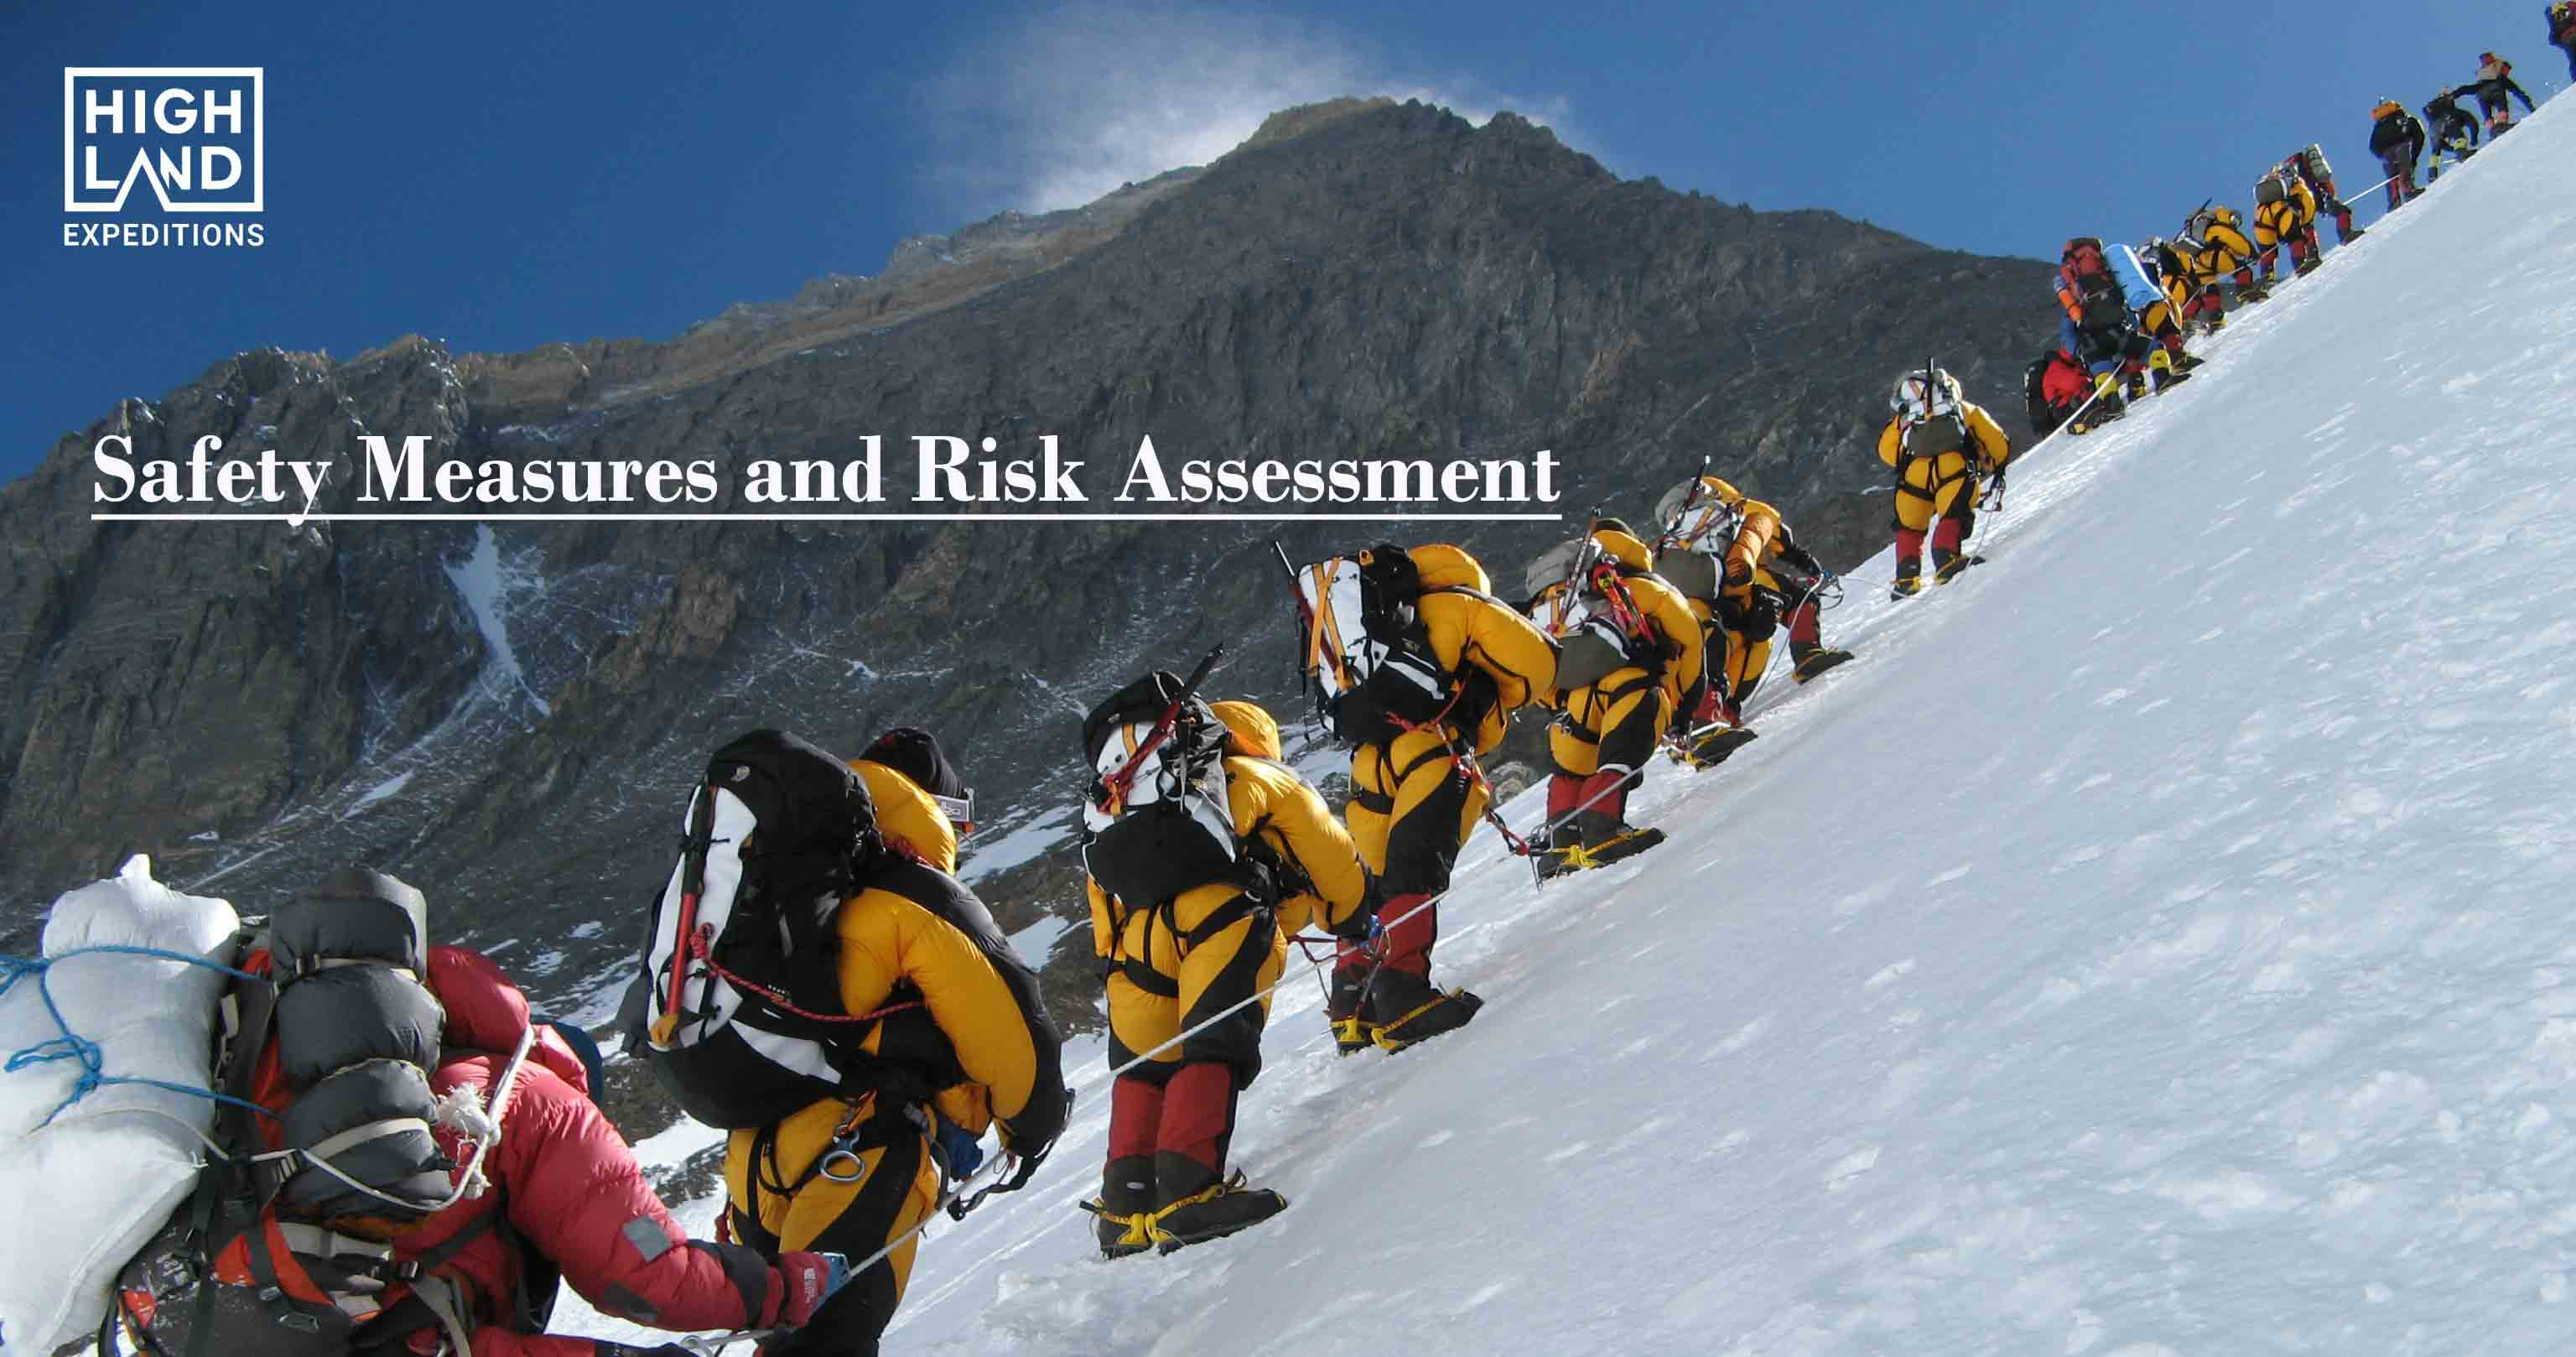 Safety measures and risk assessment for nepal treks